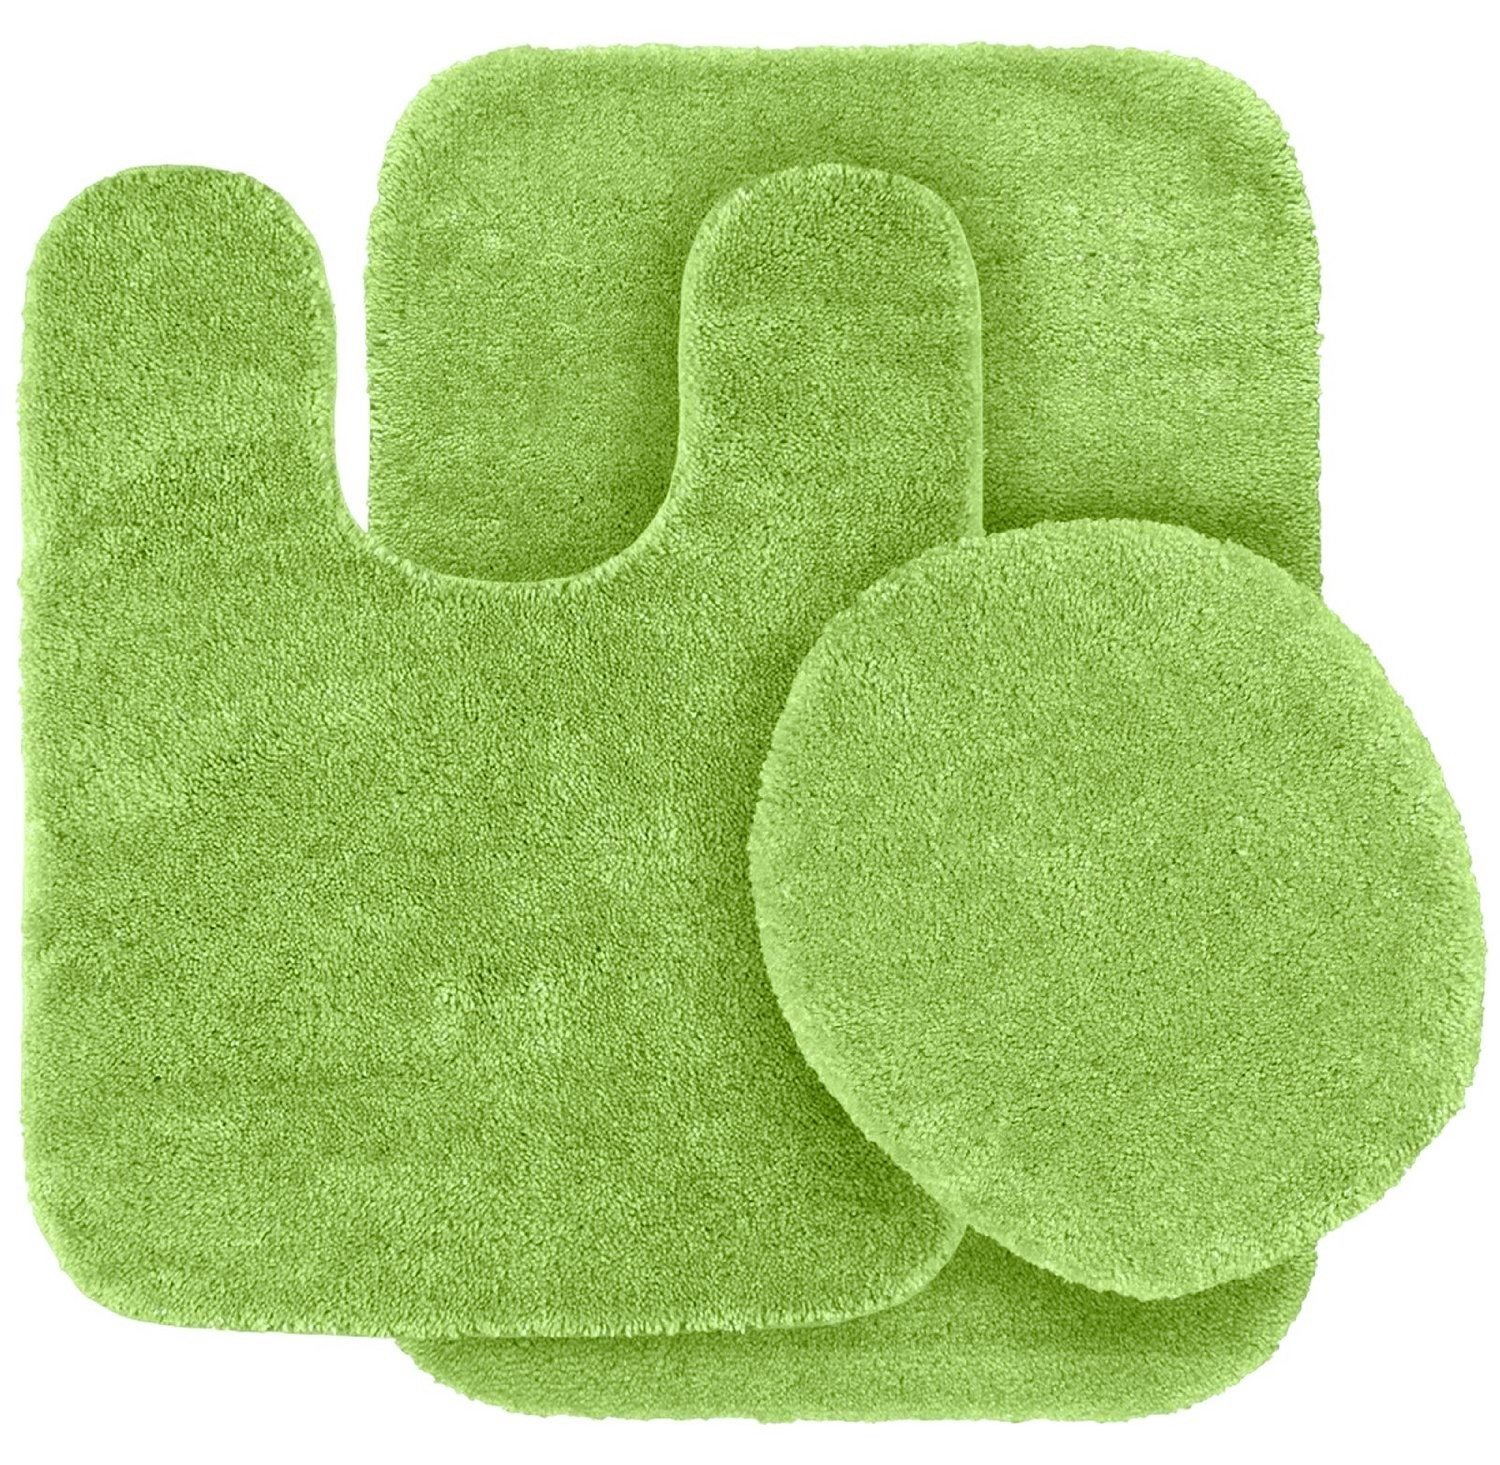 3 Pc LIME GREEN Bathroom Set Bath Mat RUG, Contour, And Toilet Lid Cover